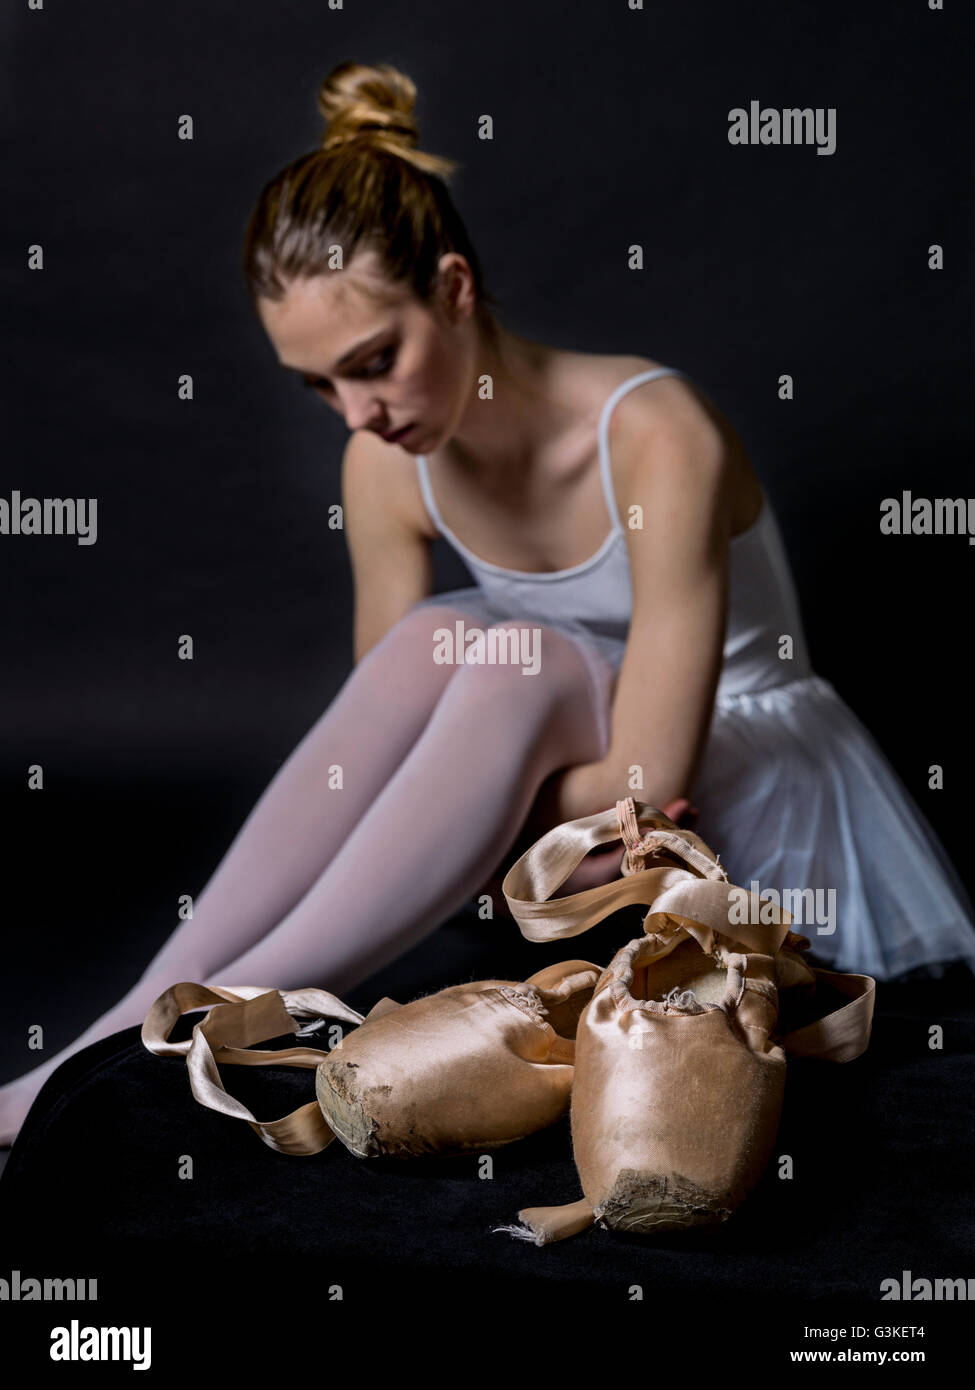 Close-up of a ballet pointe shoes, and in the background a dancer sitting, resting on black background - Stock Image